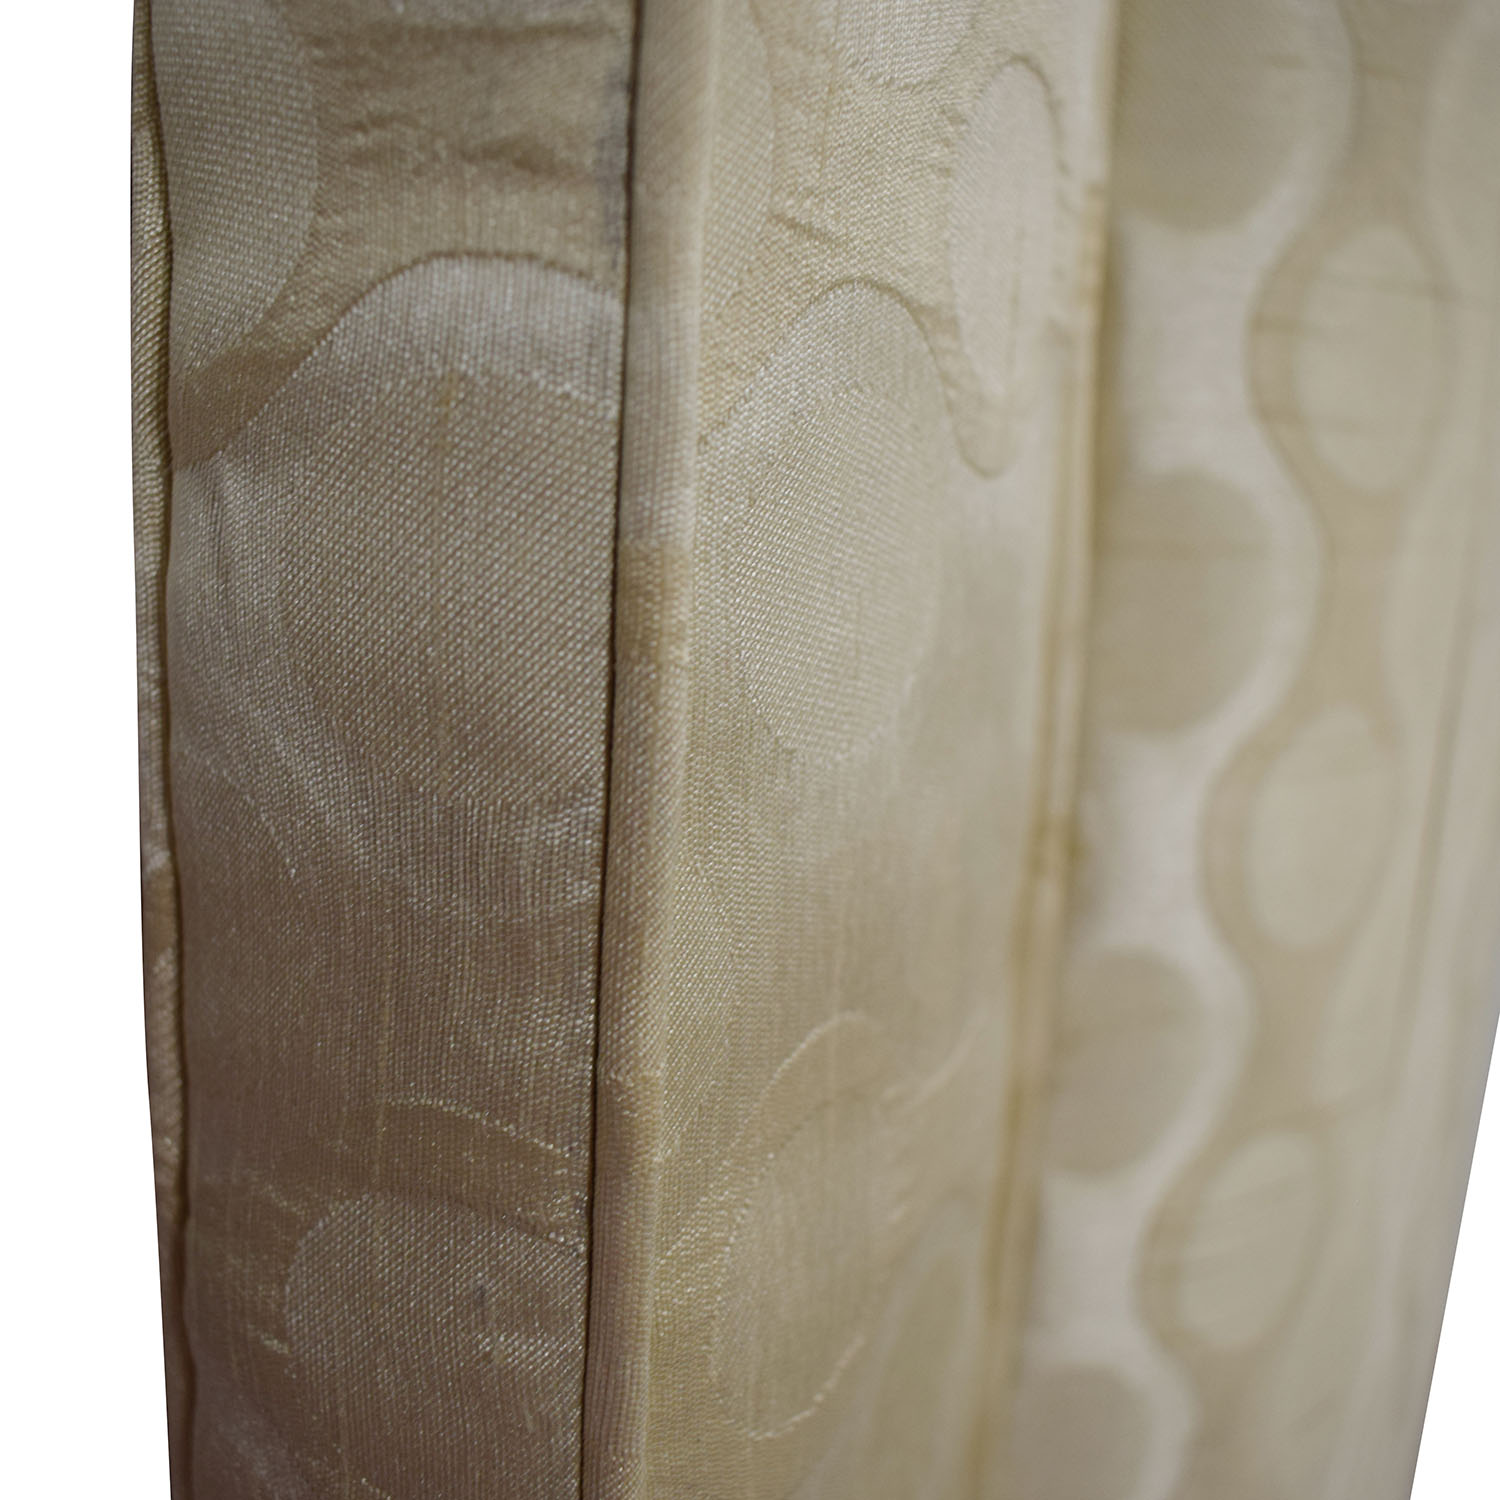 shop  Beige Upholstered Queen Headboard online